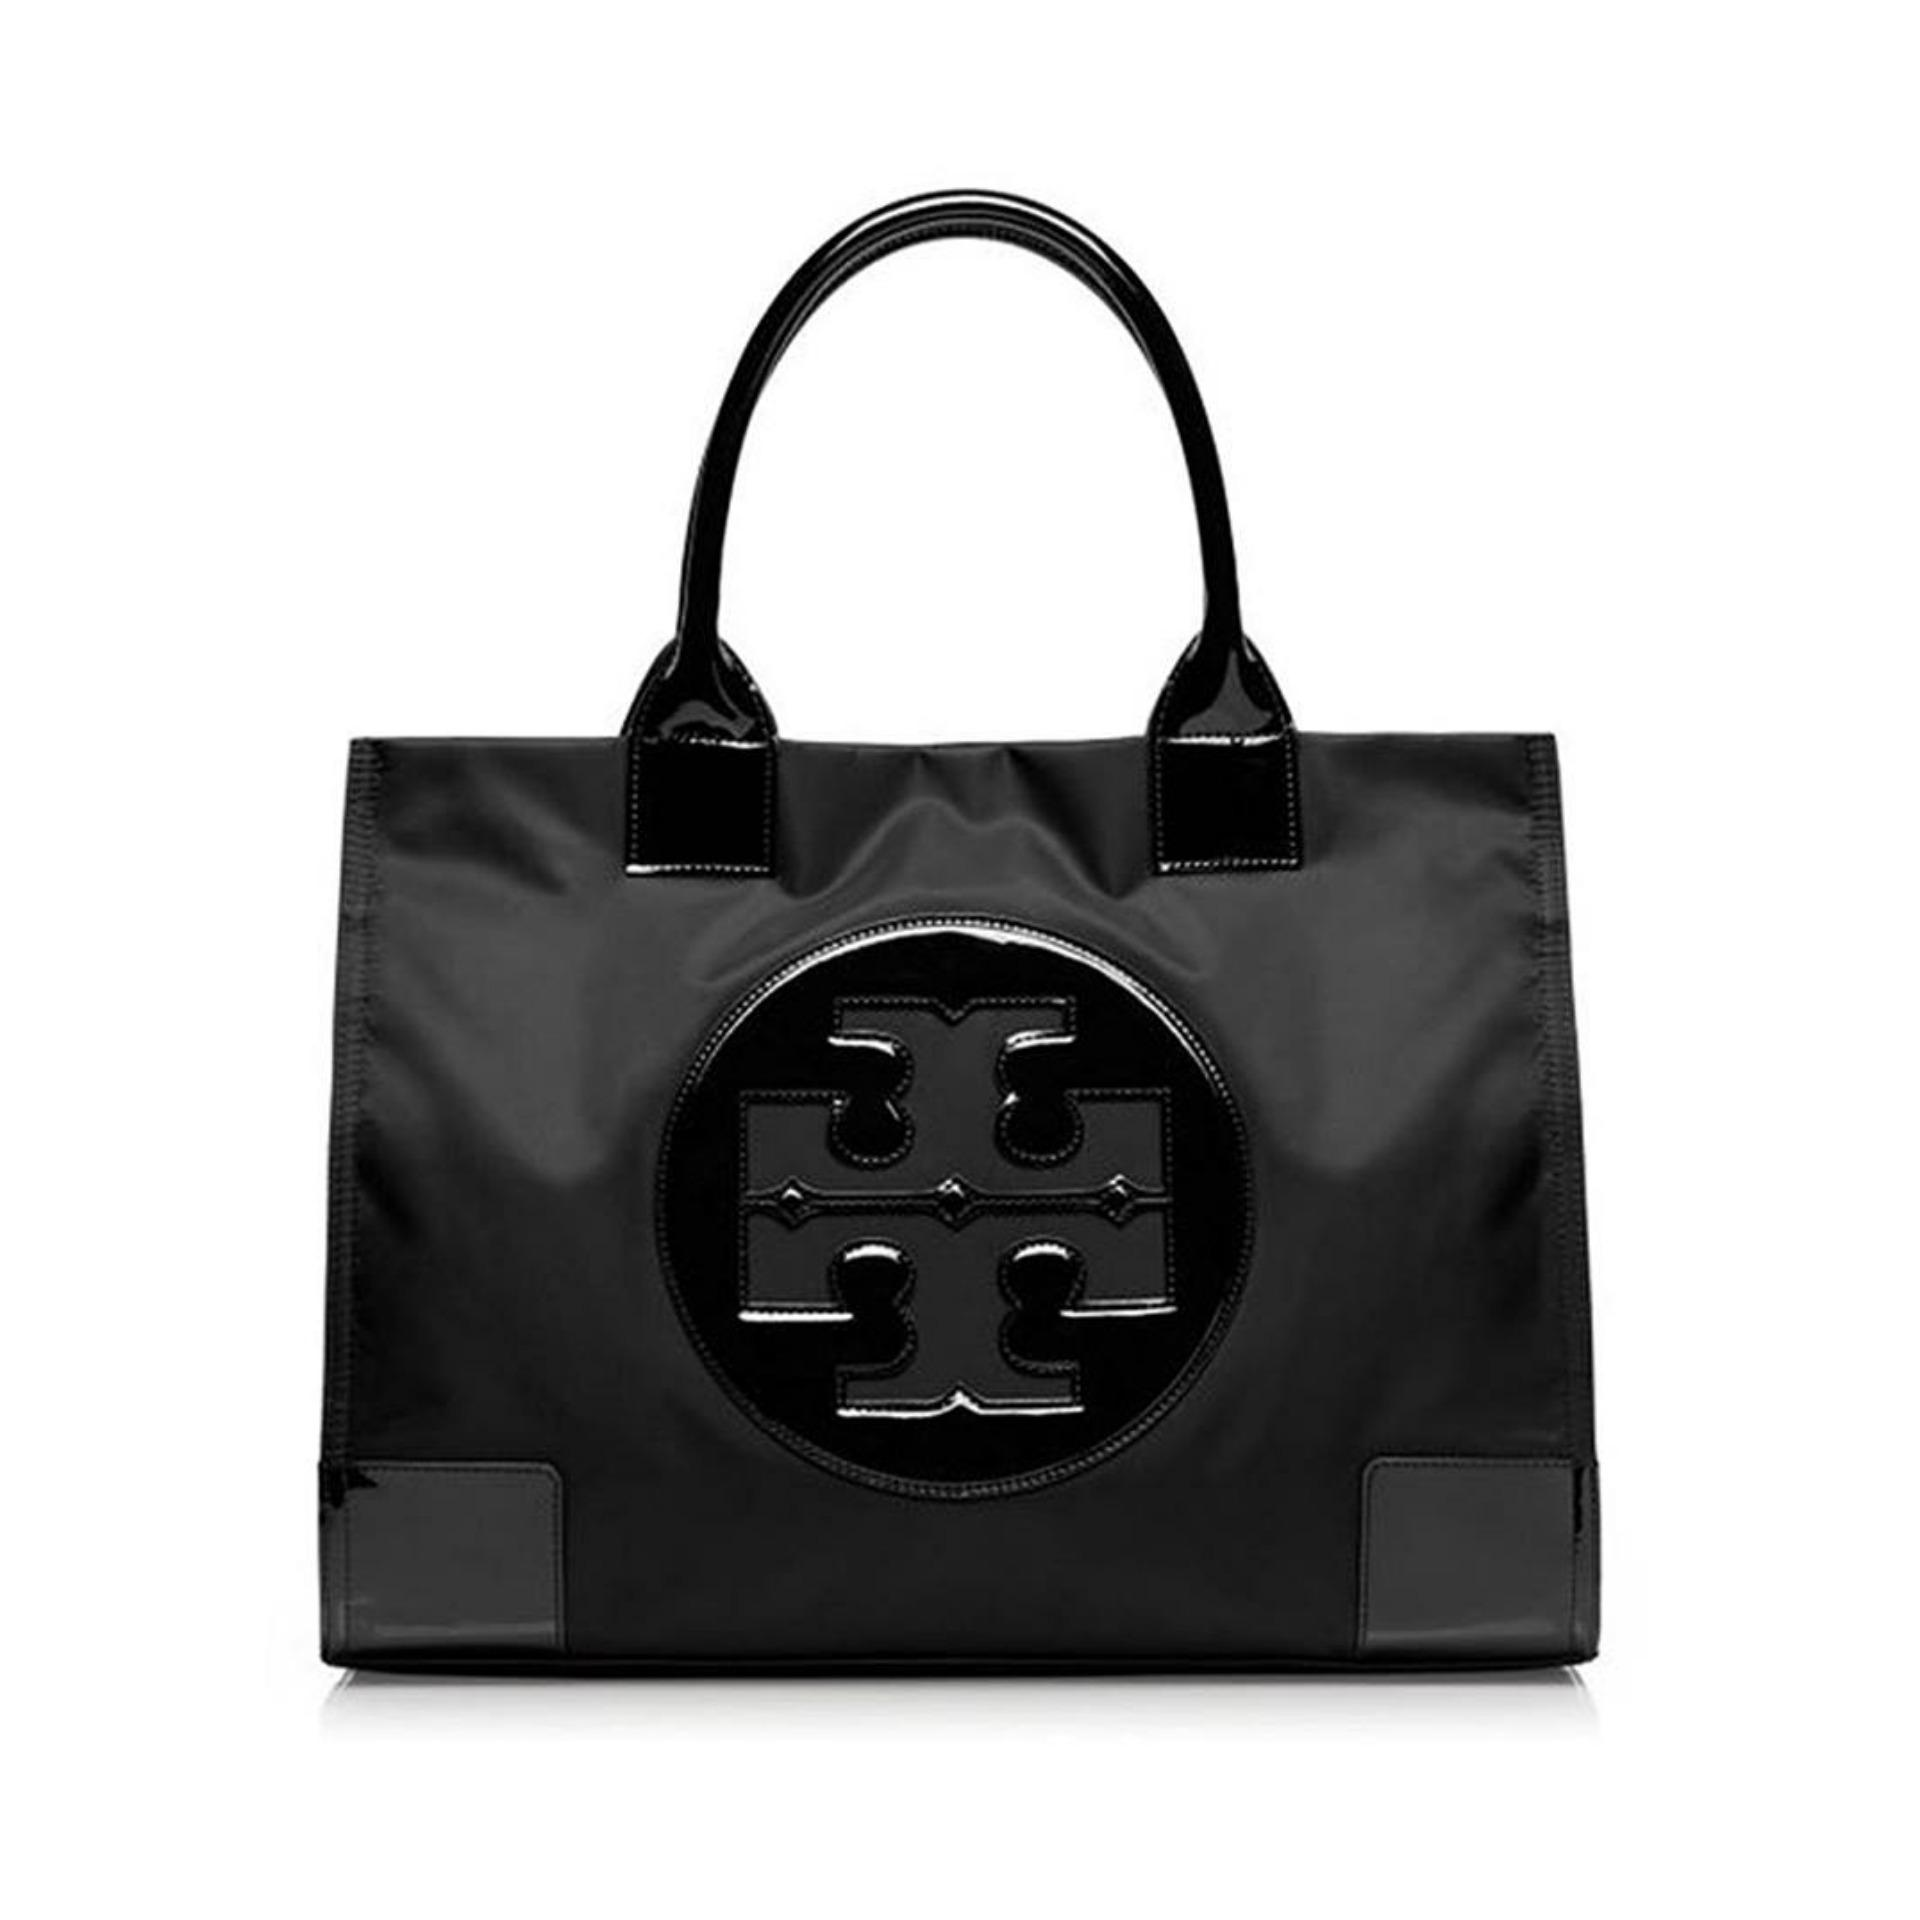 Tory Burch - Ella Tote Bag (Black) (Authentic)